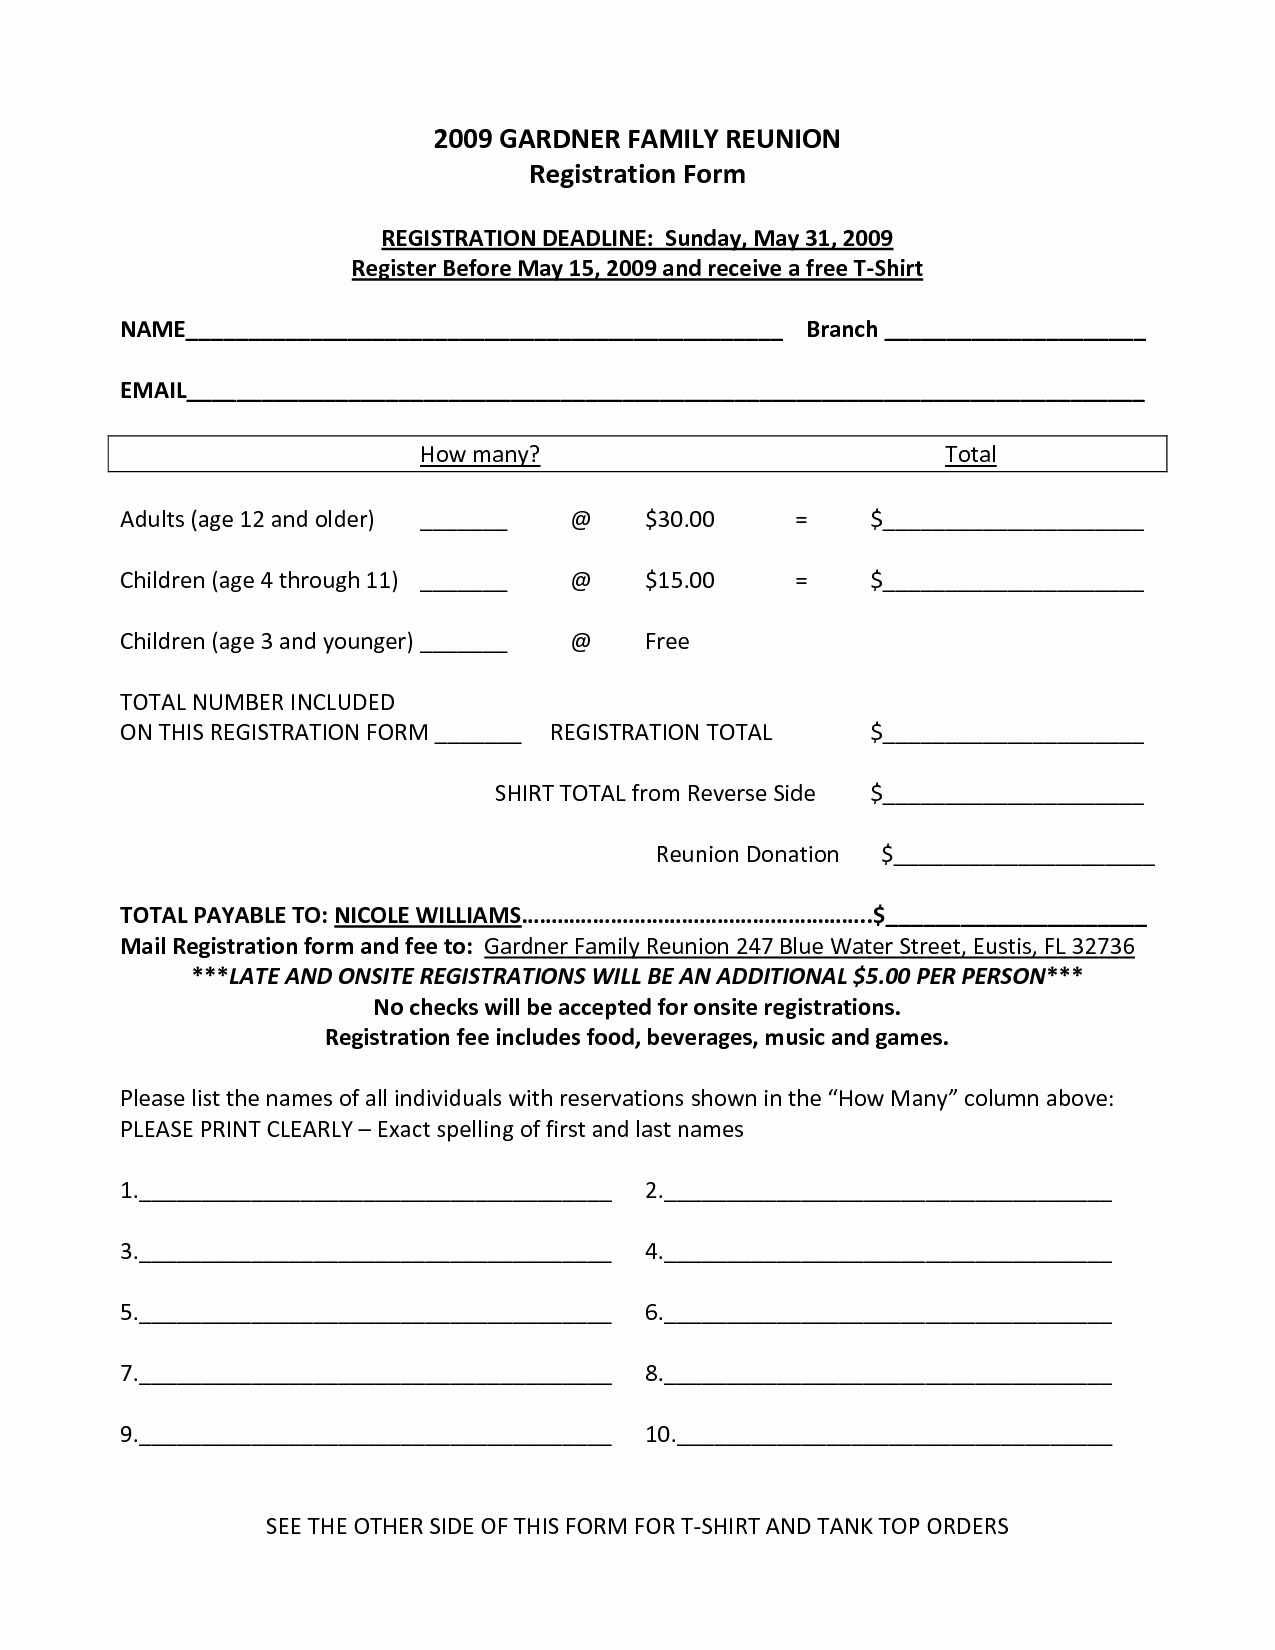 Template for Registration form Inspirational Family Reunion Registration form Template …